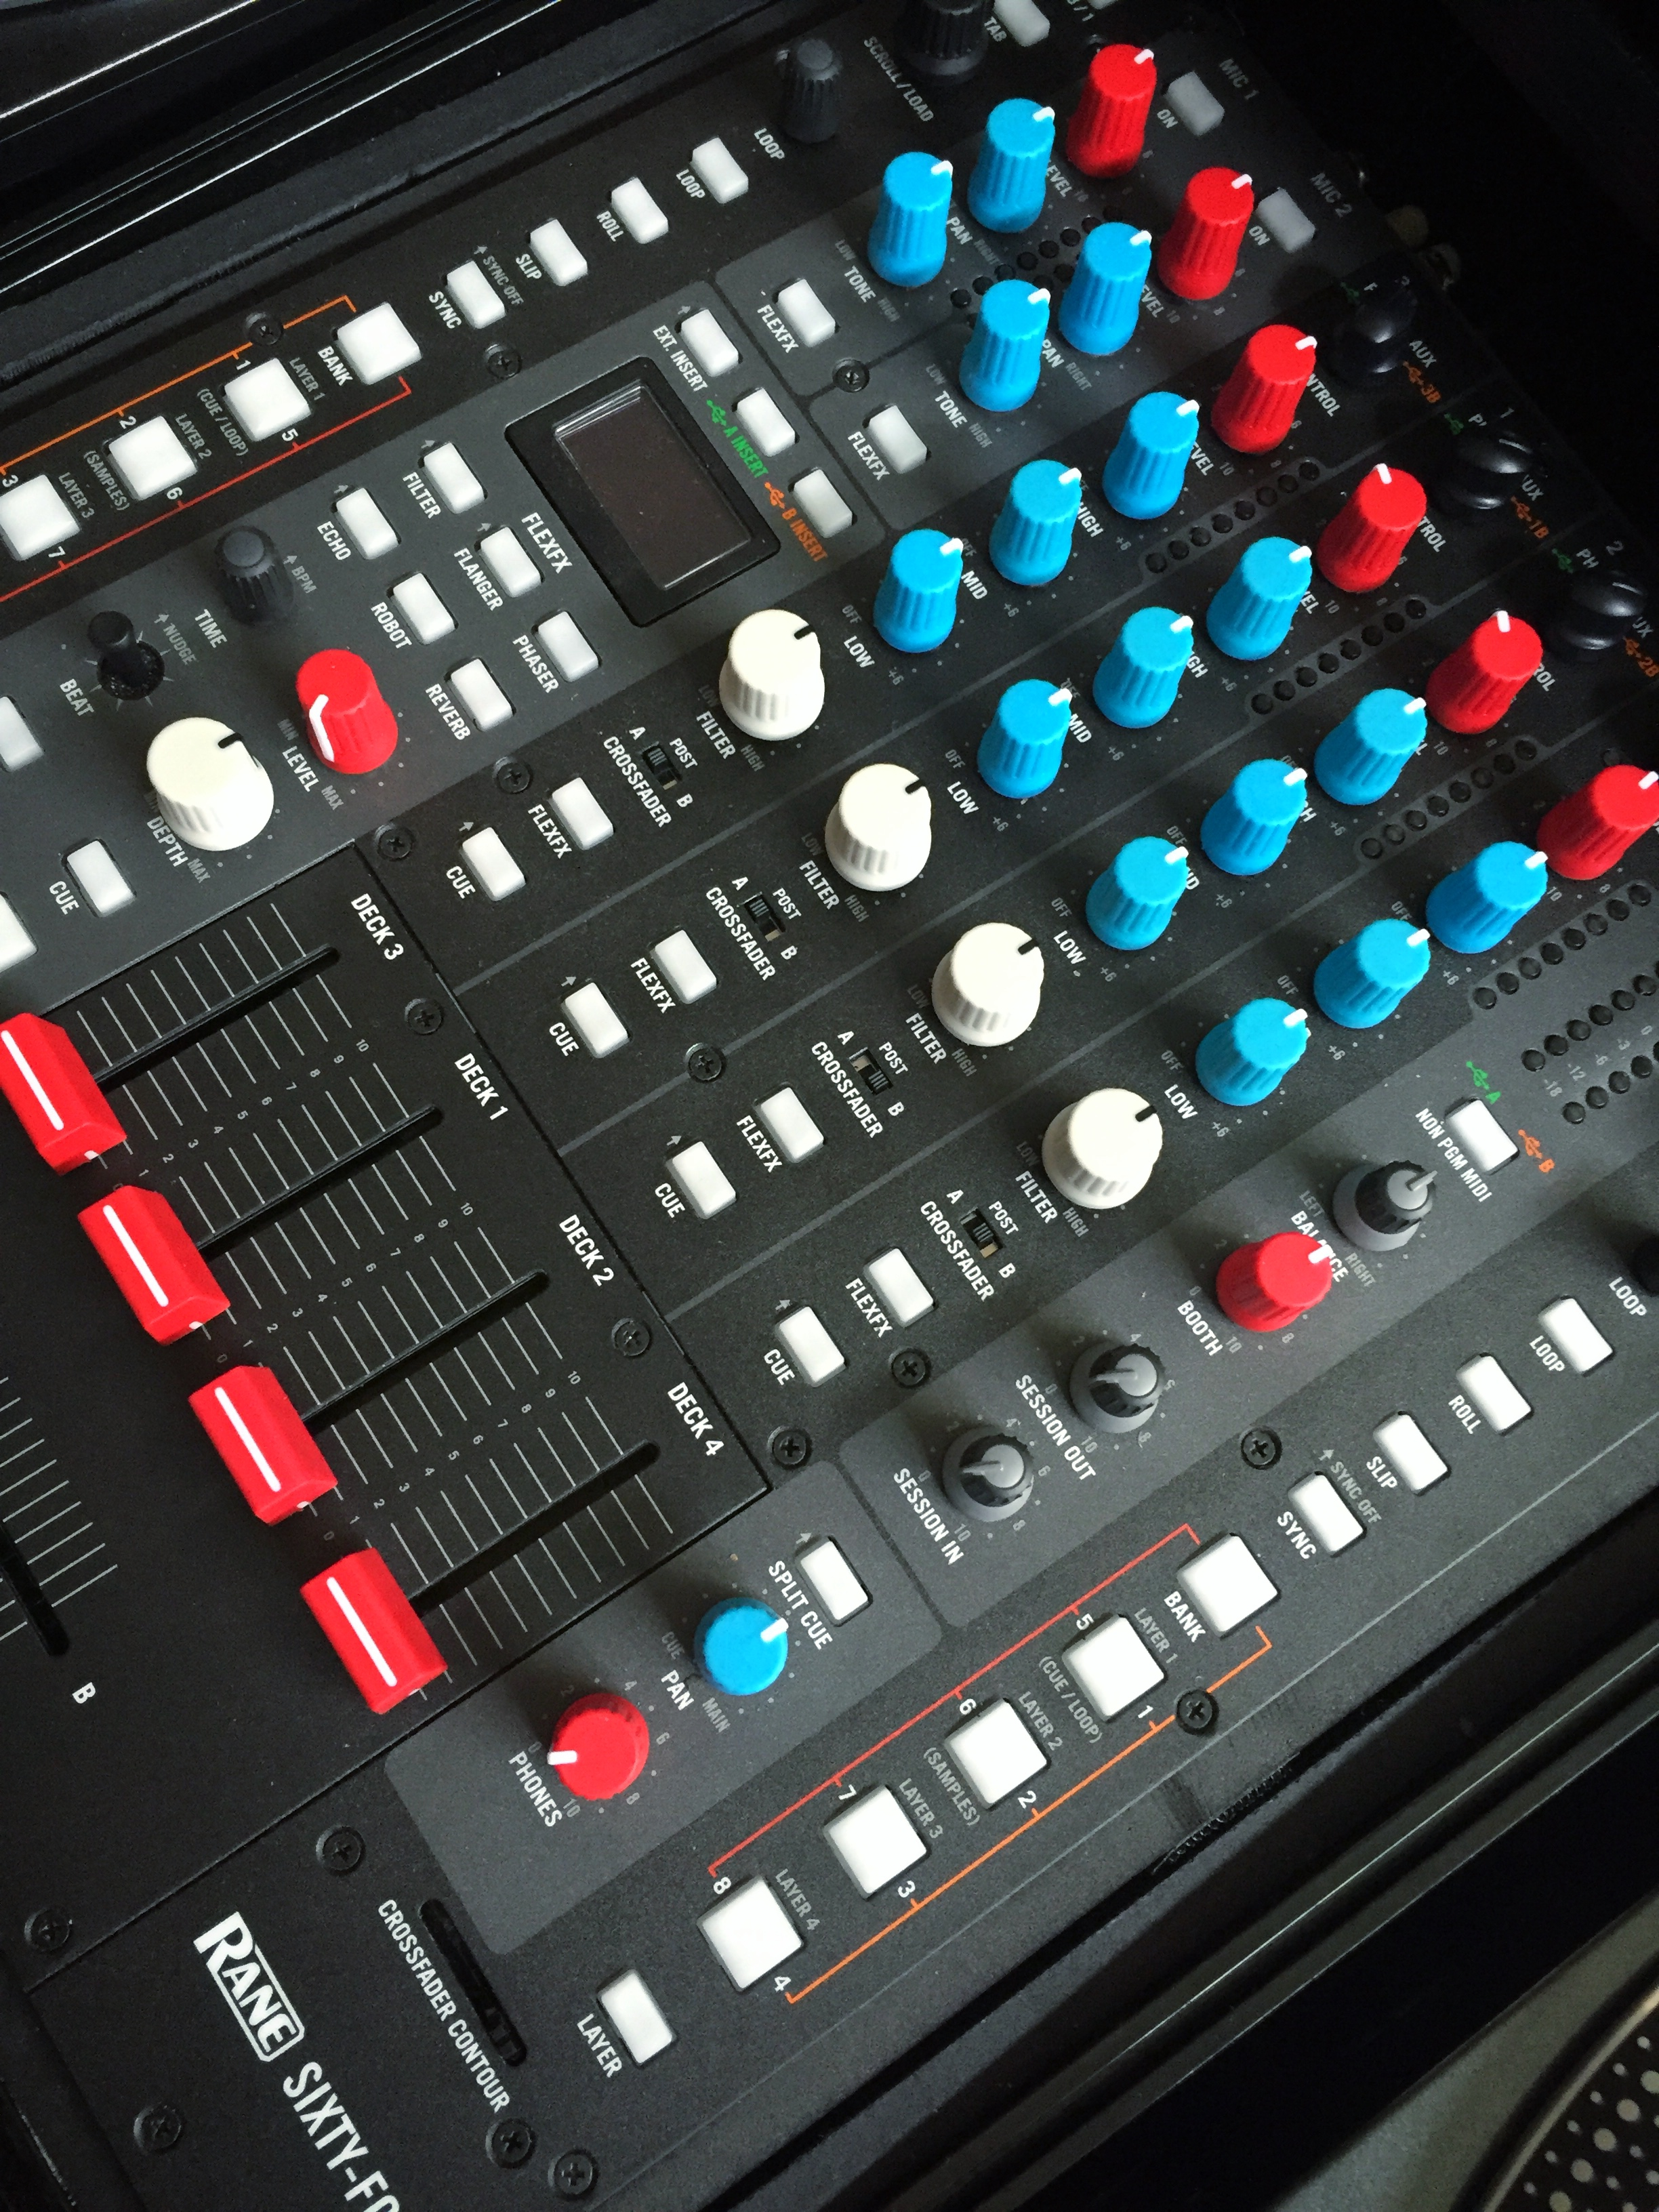 Chroma Caps from DJ Tech Tools applied to a Rane 64 DJ mixer.